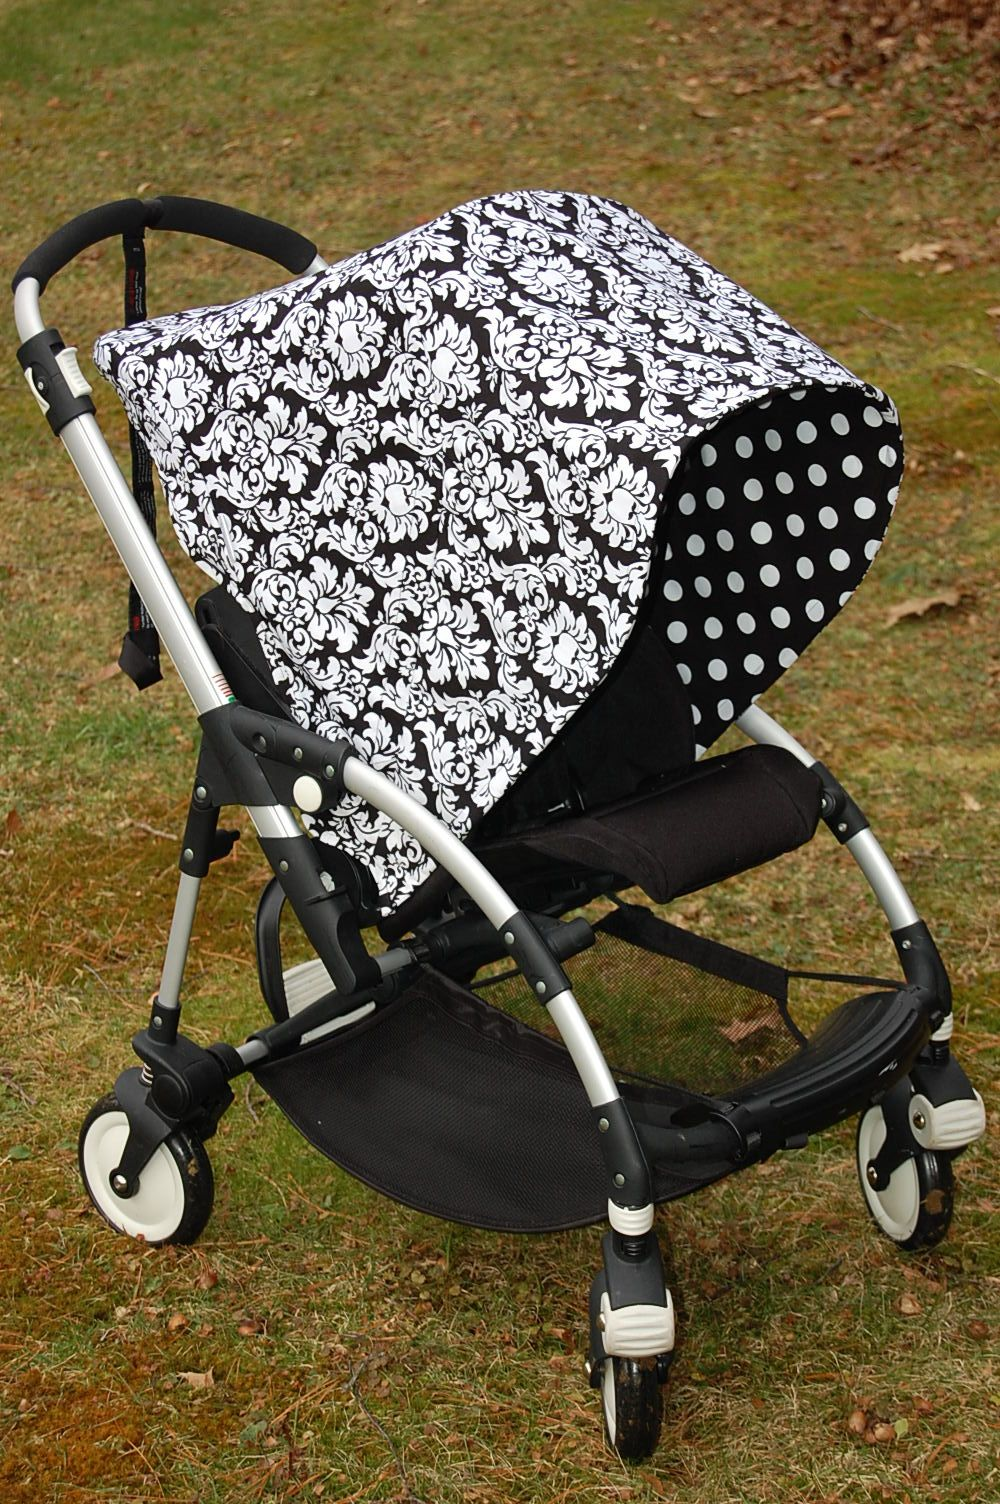 3 new sets created earlier this week Bugaboo stroller